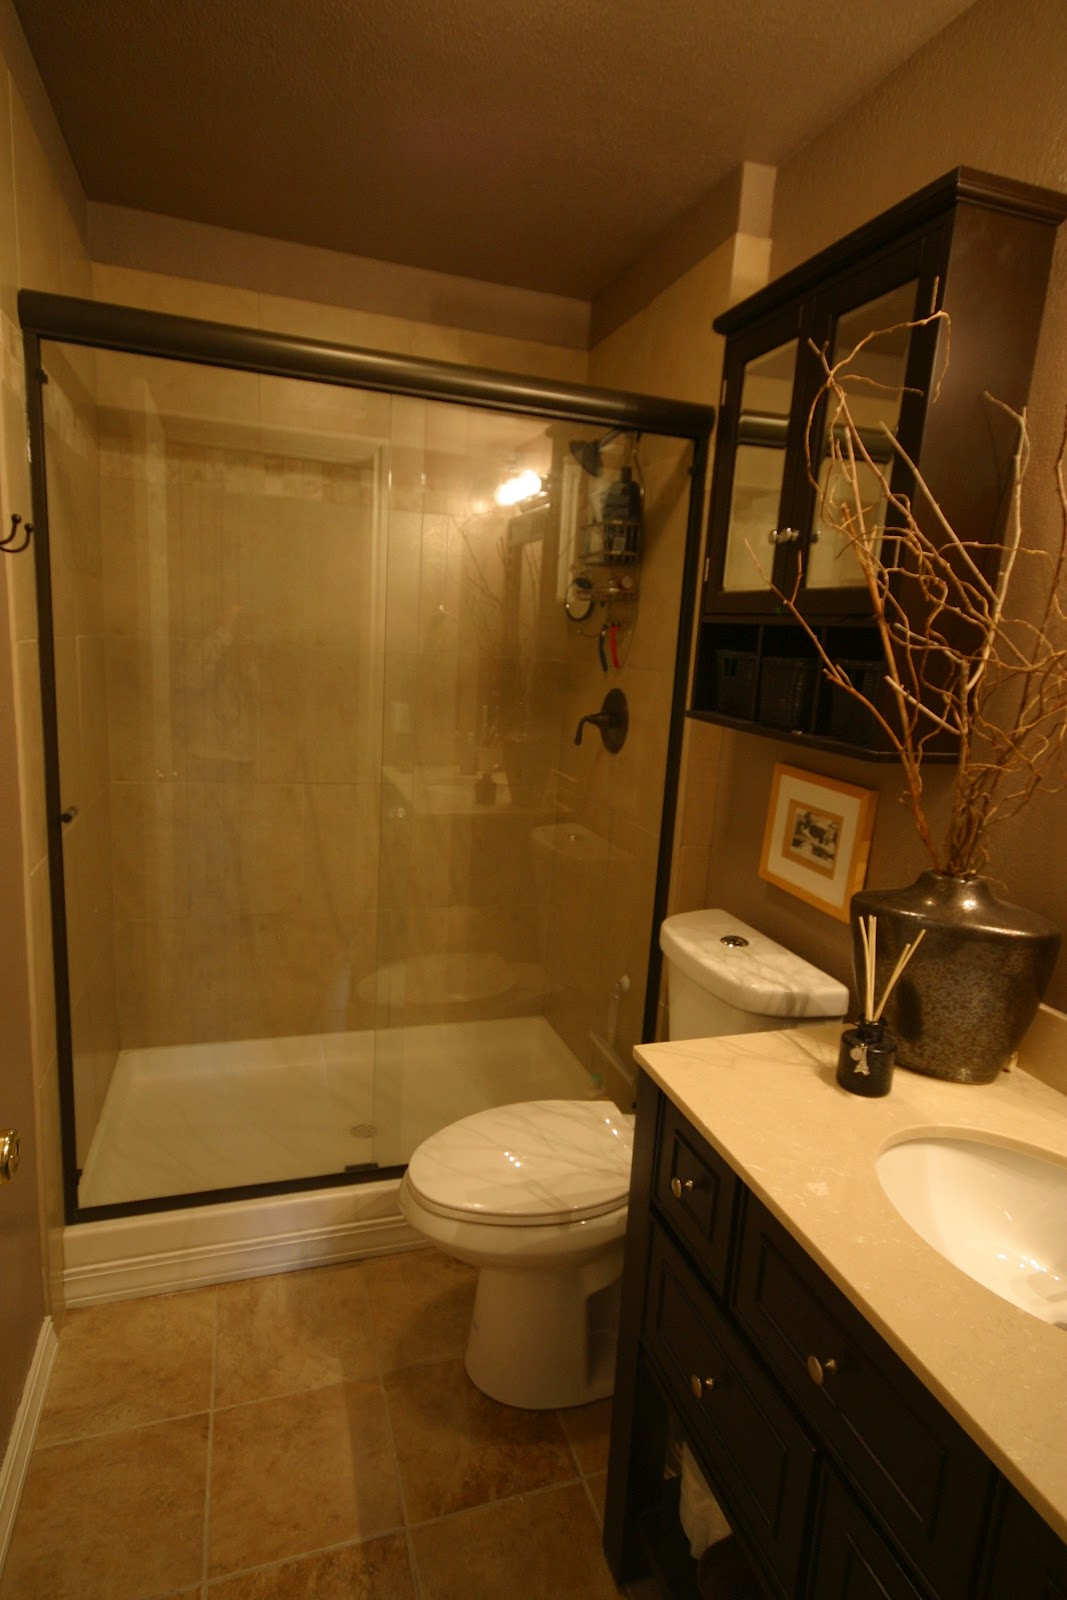 Small bathroom remodels maximal outlook in minimal space and cost homesfeed - Pictures of small bathrooms ...